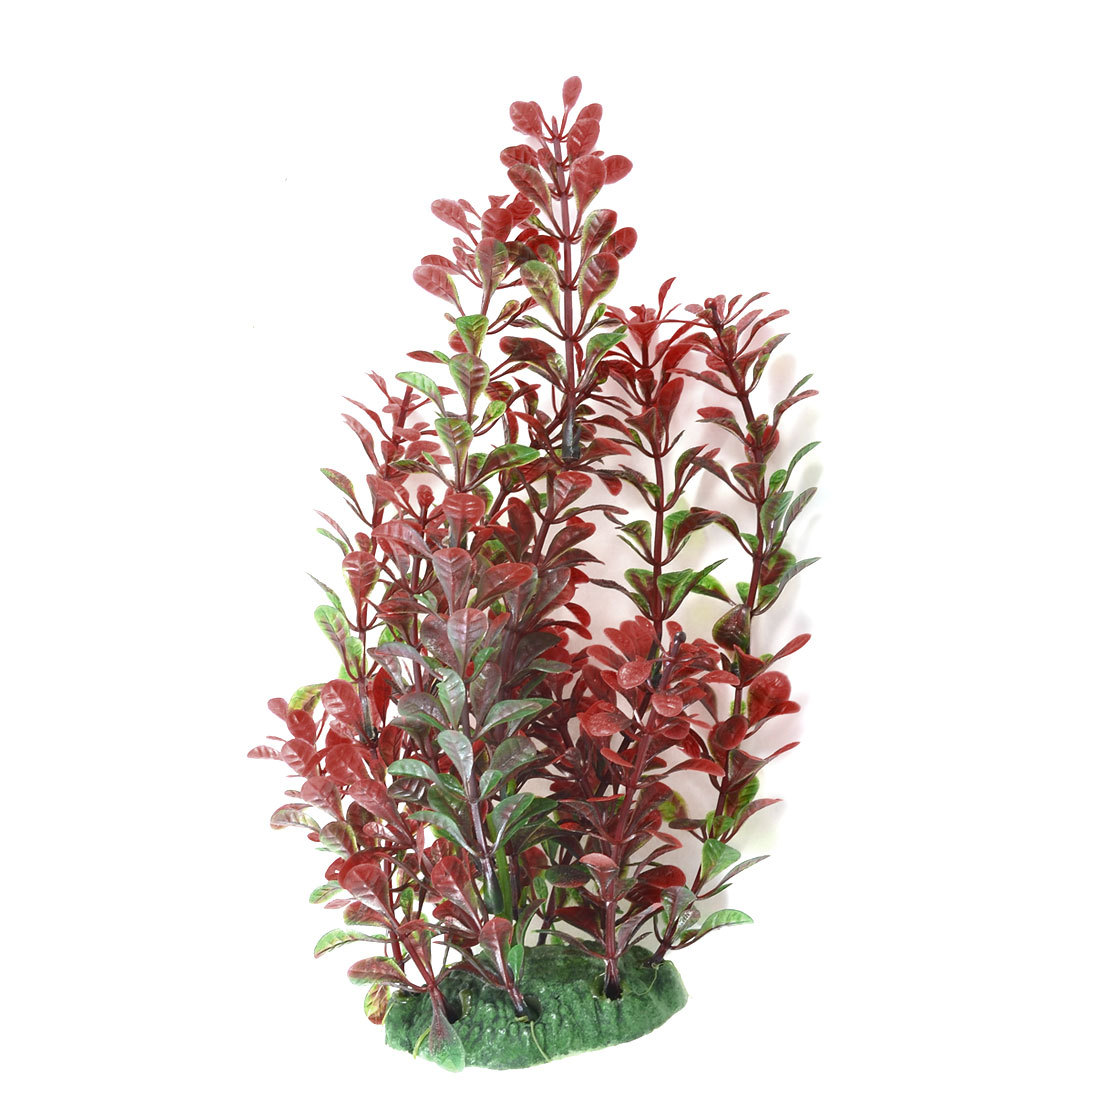 "Red Green Leaves Manmade Water Grass 7"" High for Fish Tank"